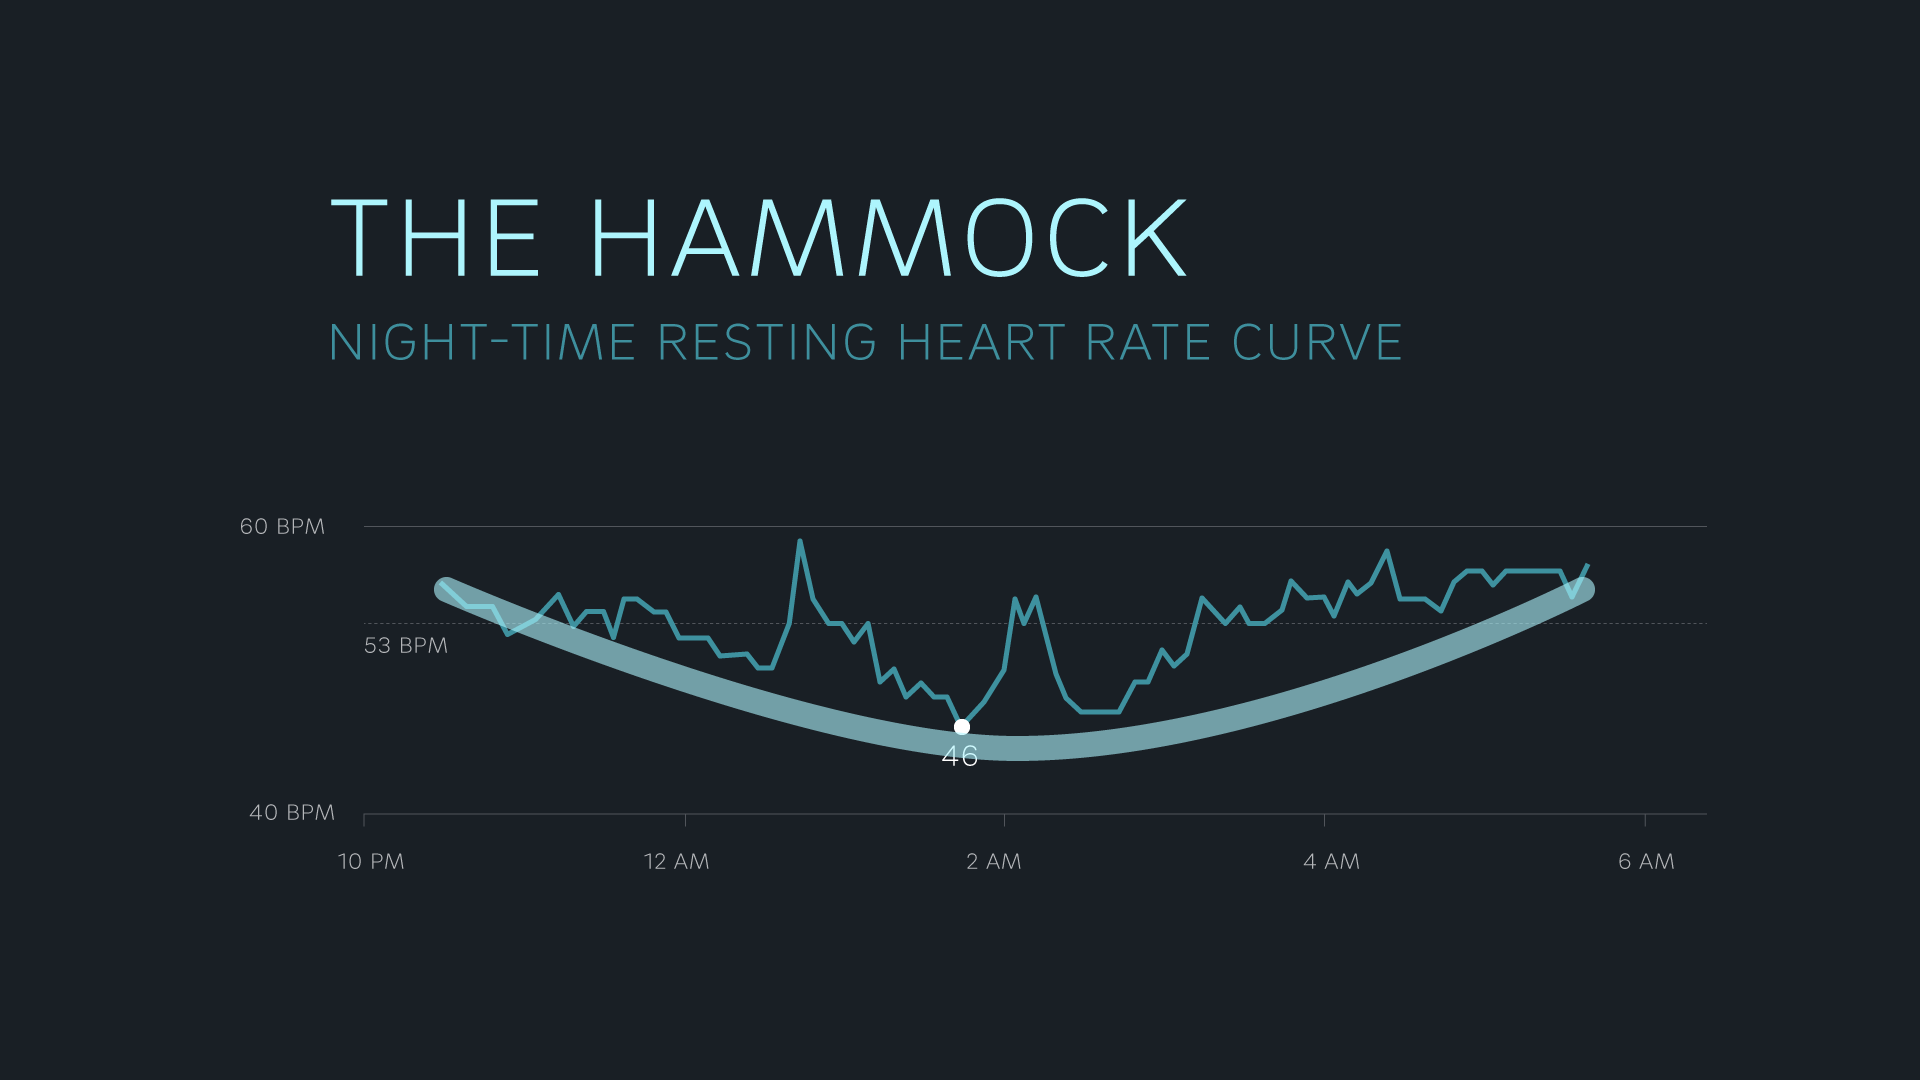 The Hammock-shaped heart rate curve